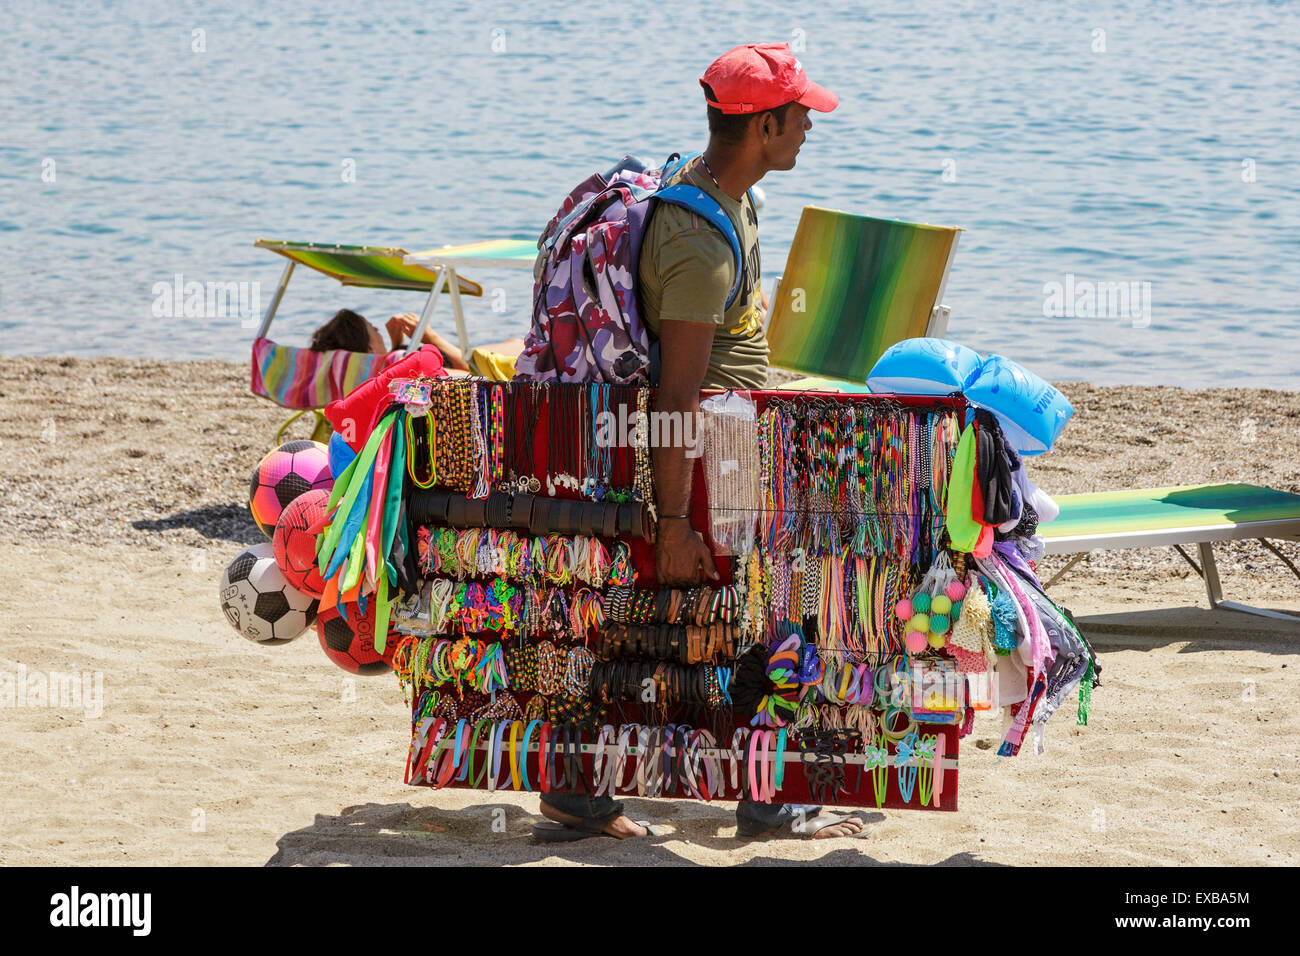 Man selling jewellery and toys on the beach at Giardini ...